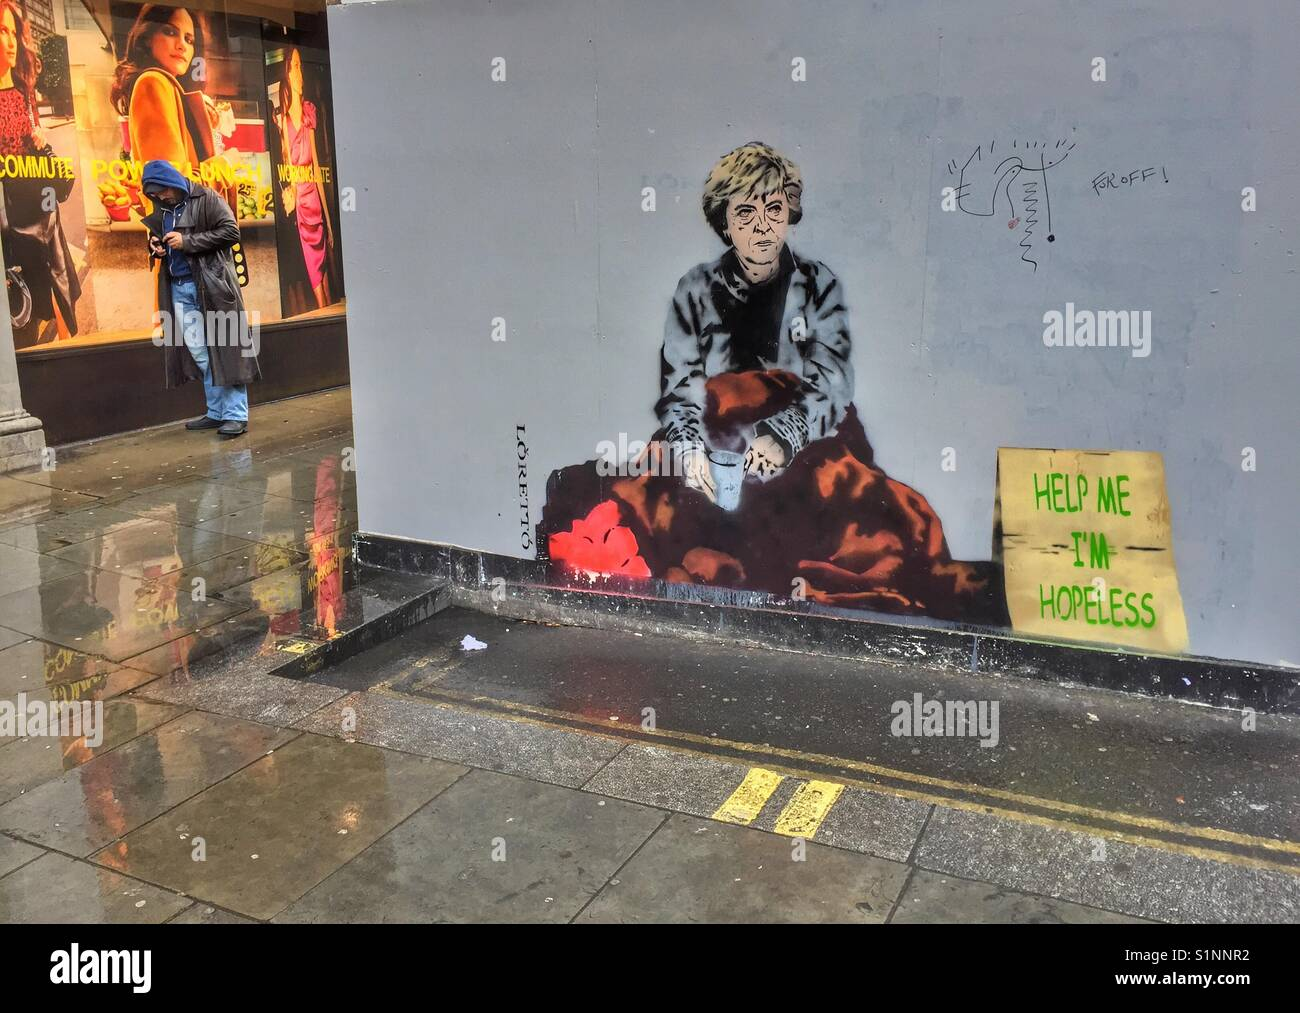 Street art by Loretto depicting UK Prime Minister Theresa May next to the sign 'help me I'm hopeless', - Stock Image